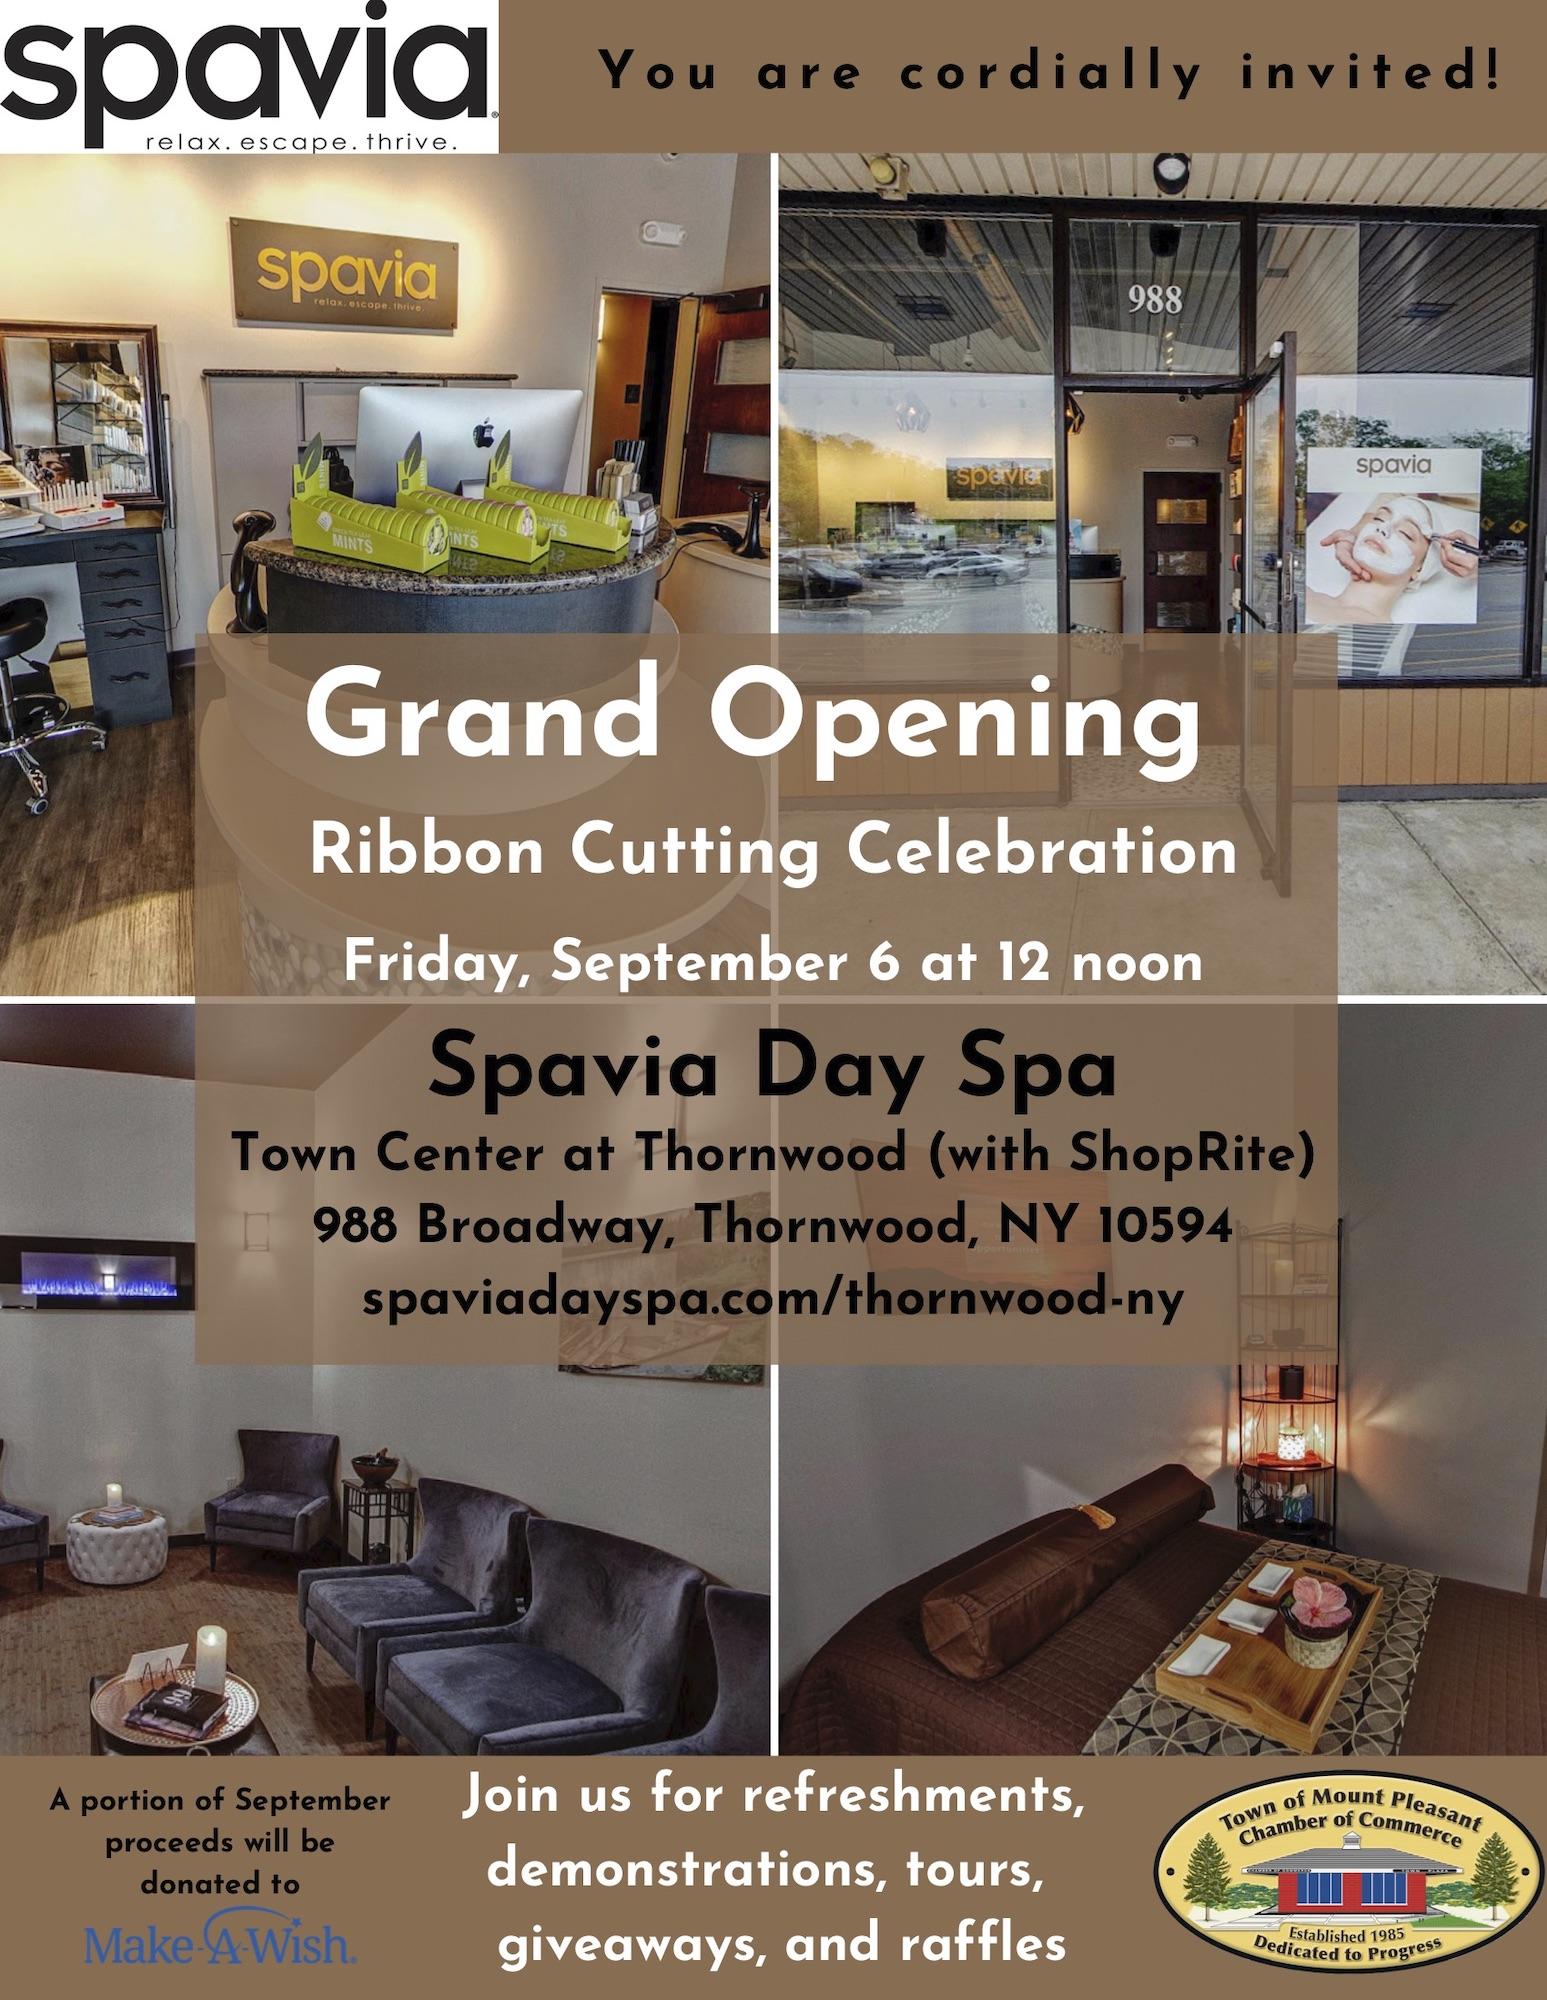 Spavia Day Spa Hosts Grand Opening Ribbon Cutting in Thornwood